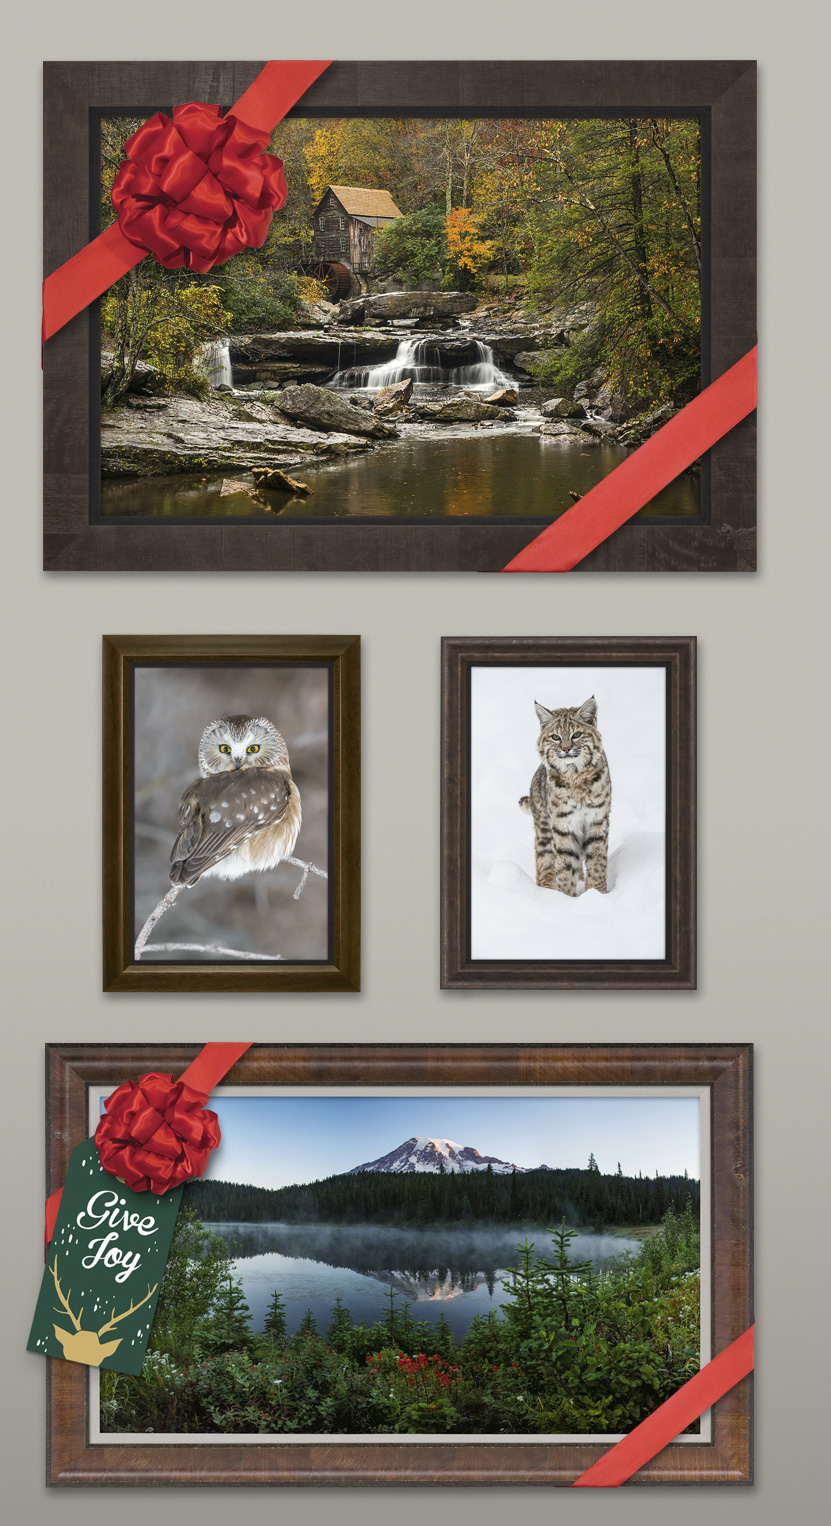 New release images now premiering in MANGELSEN Images of Nature Galleries